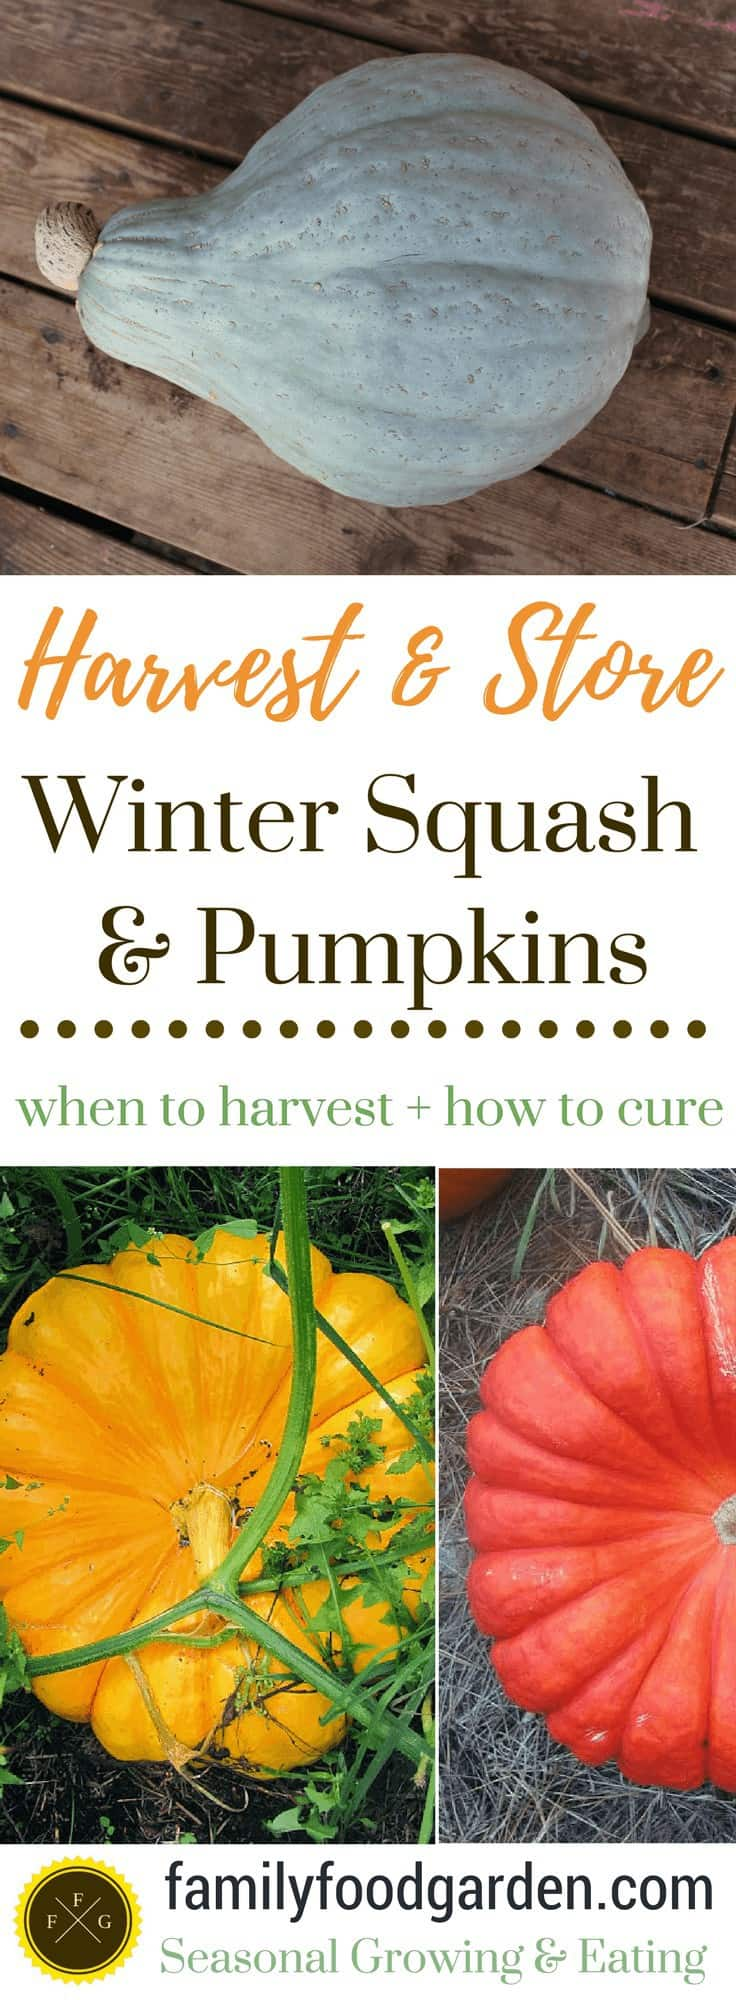 When to harvest, how to cure & store winter squash and pumpkins